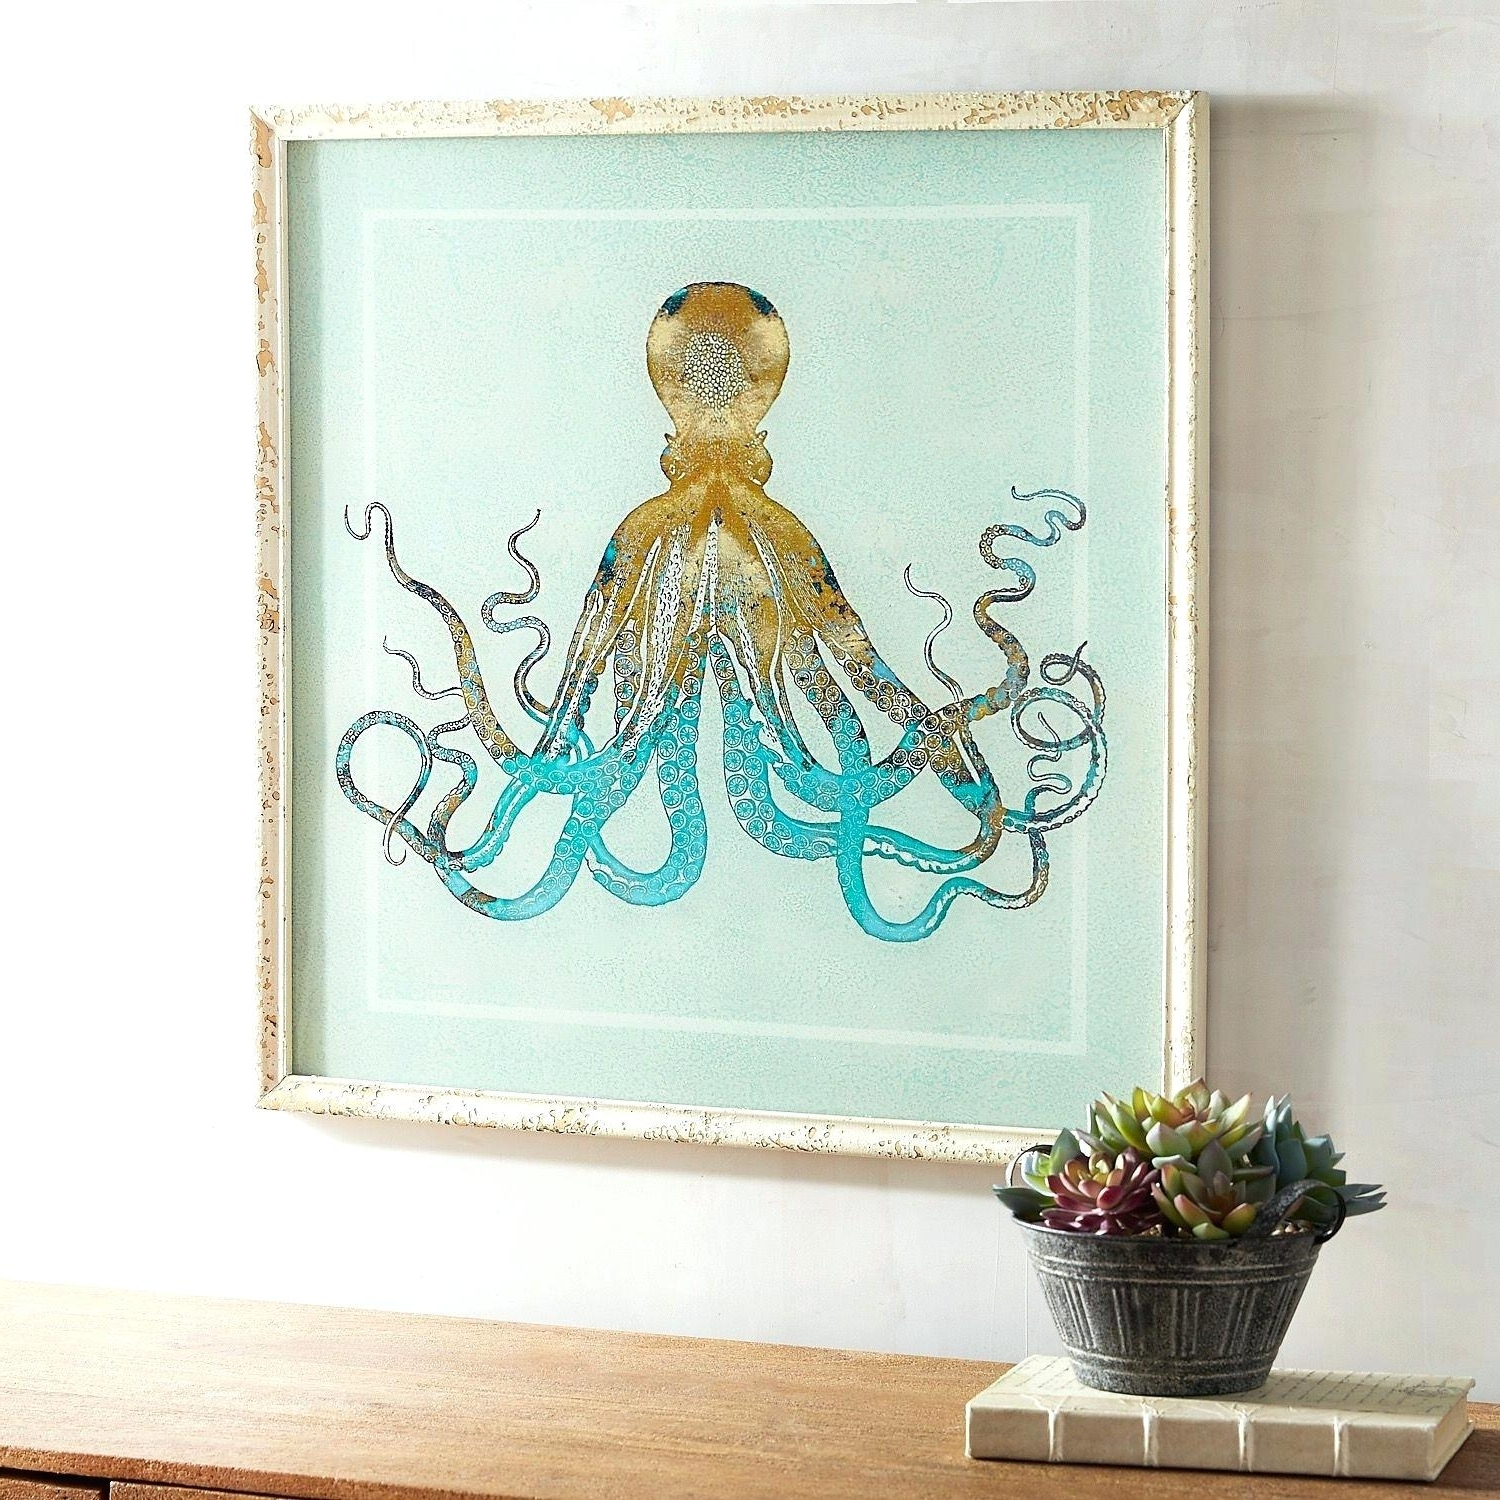 Best And Newest Octopus Wall Art Bathroom Blue Splash Octopus Wall Art Octopus Art Inside Octopus Wall Art (View 2 of 20)